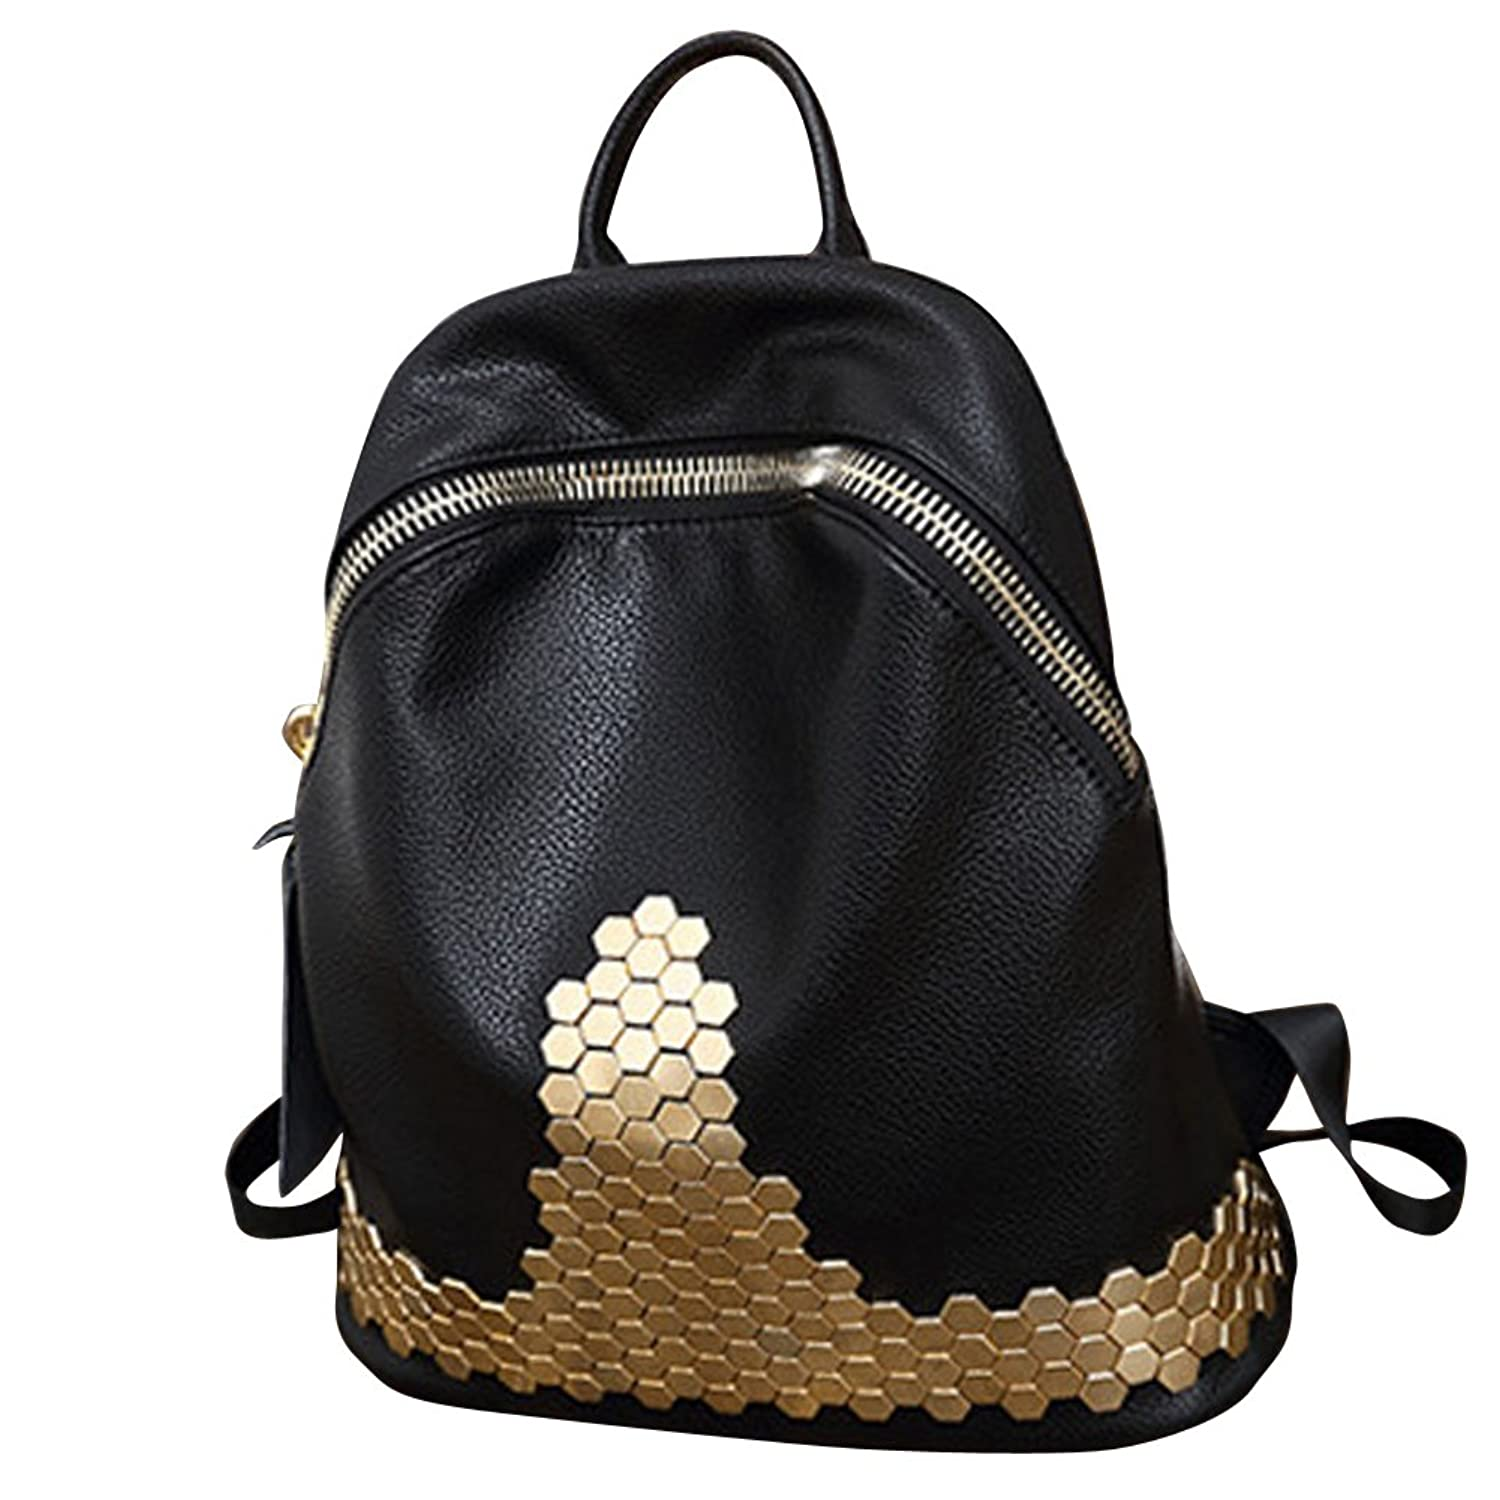 YipGrace Simple Fashion Rivet Zipper Backpacks Korean Version of Casual Shoulder Bag for Girls